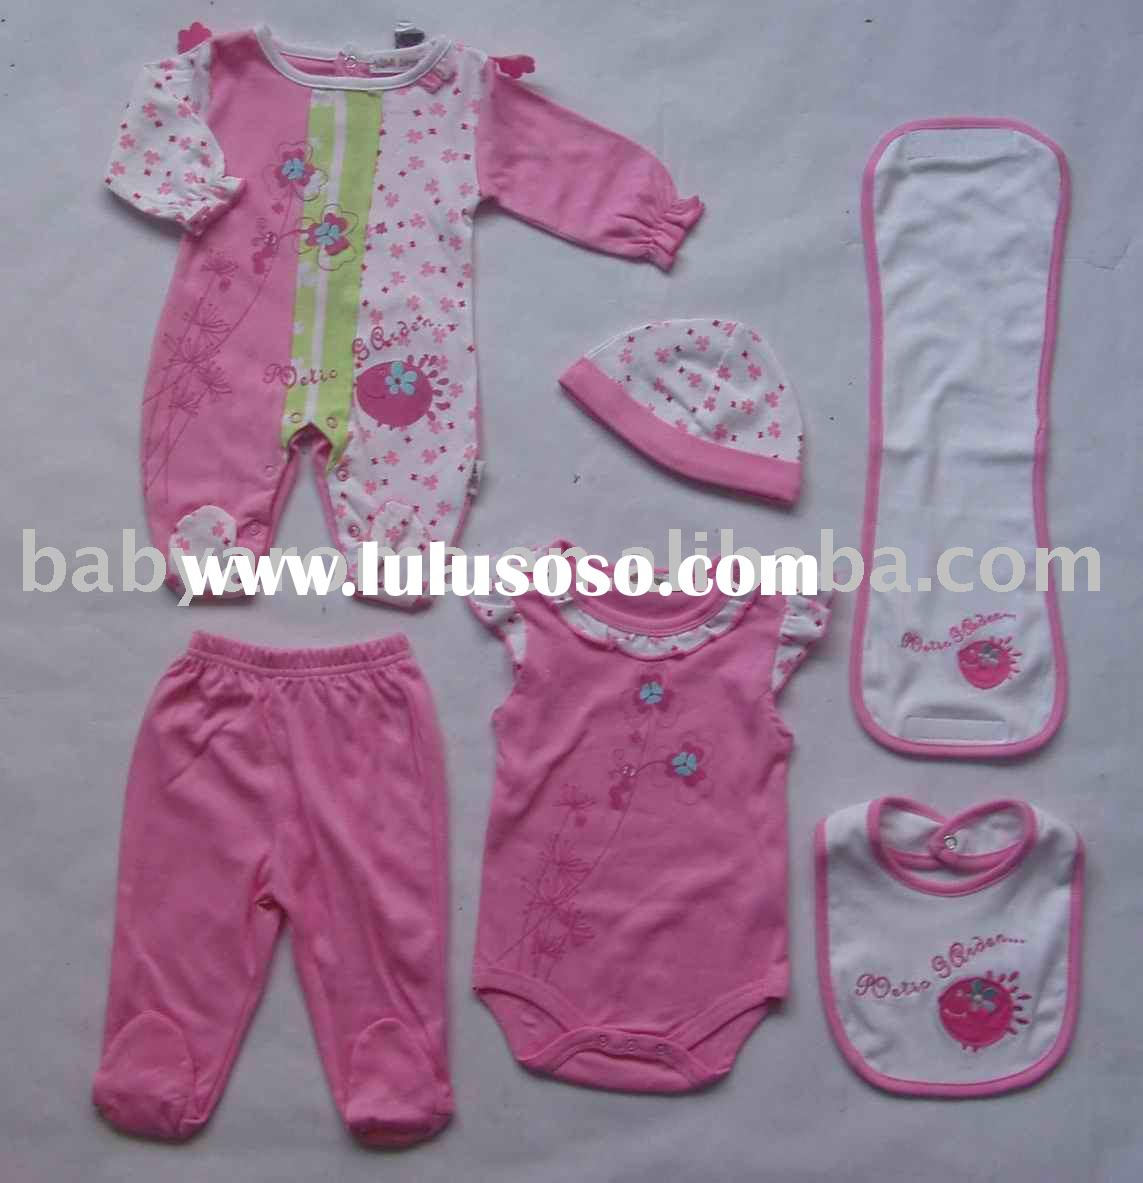 Baby Clothing Sets(baby clothes)